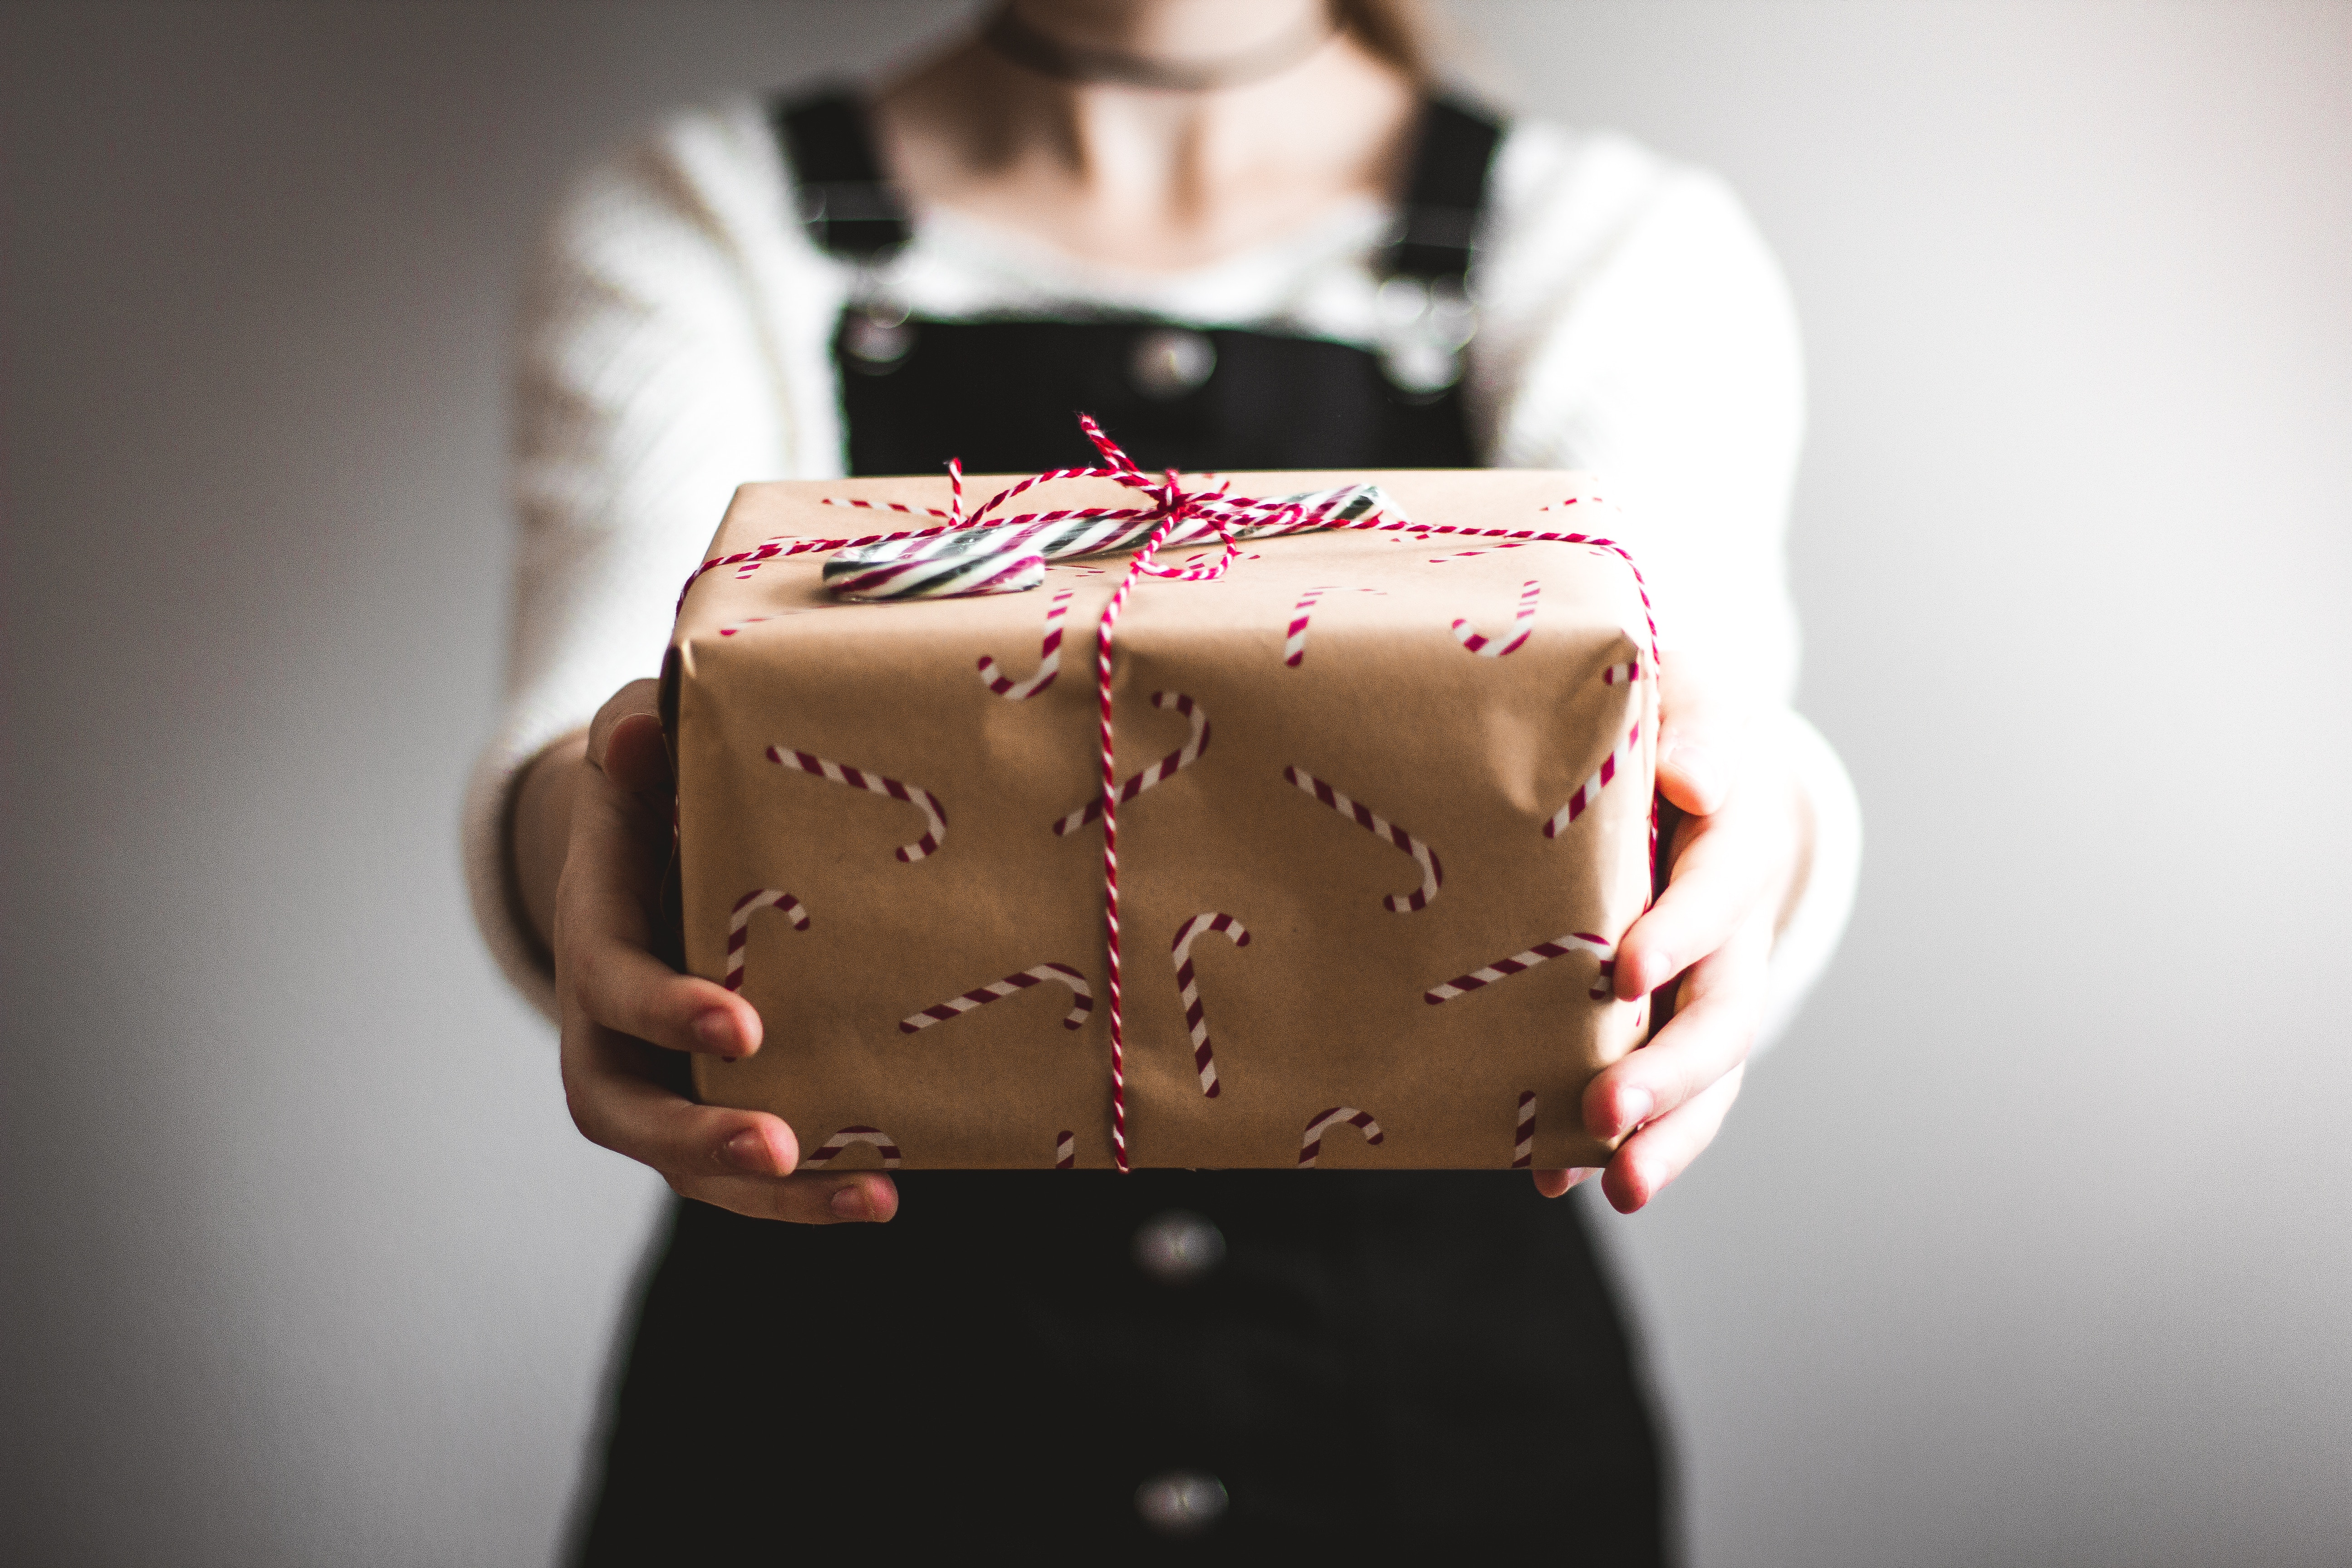 Quickbooks Corner: The best gift you can give your accountant